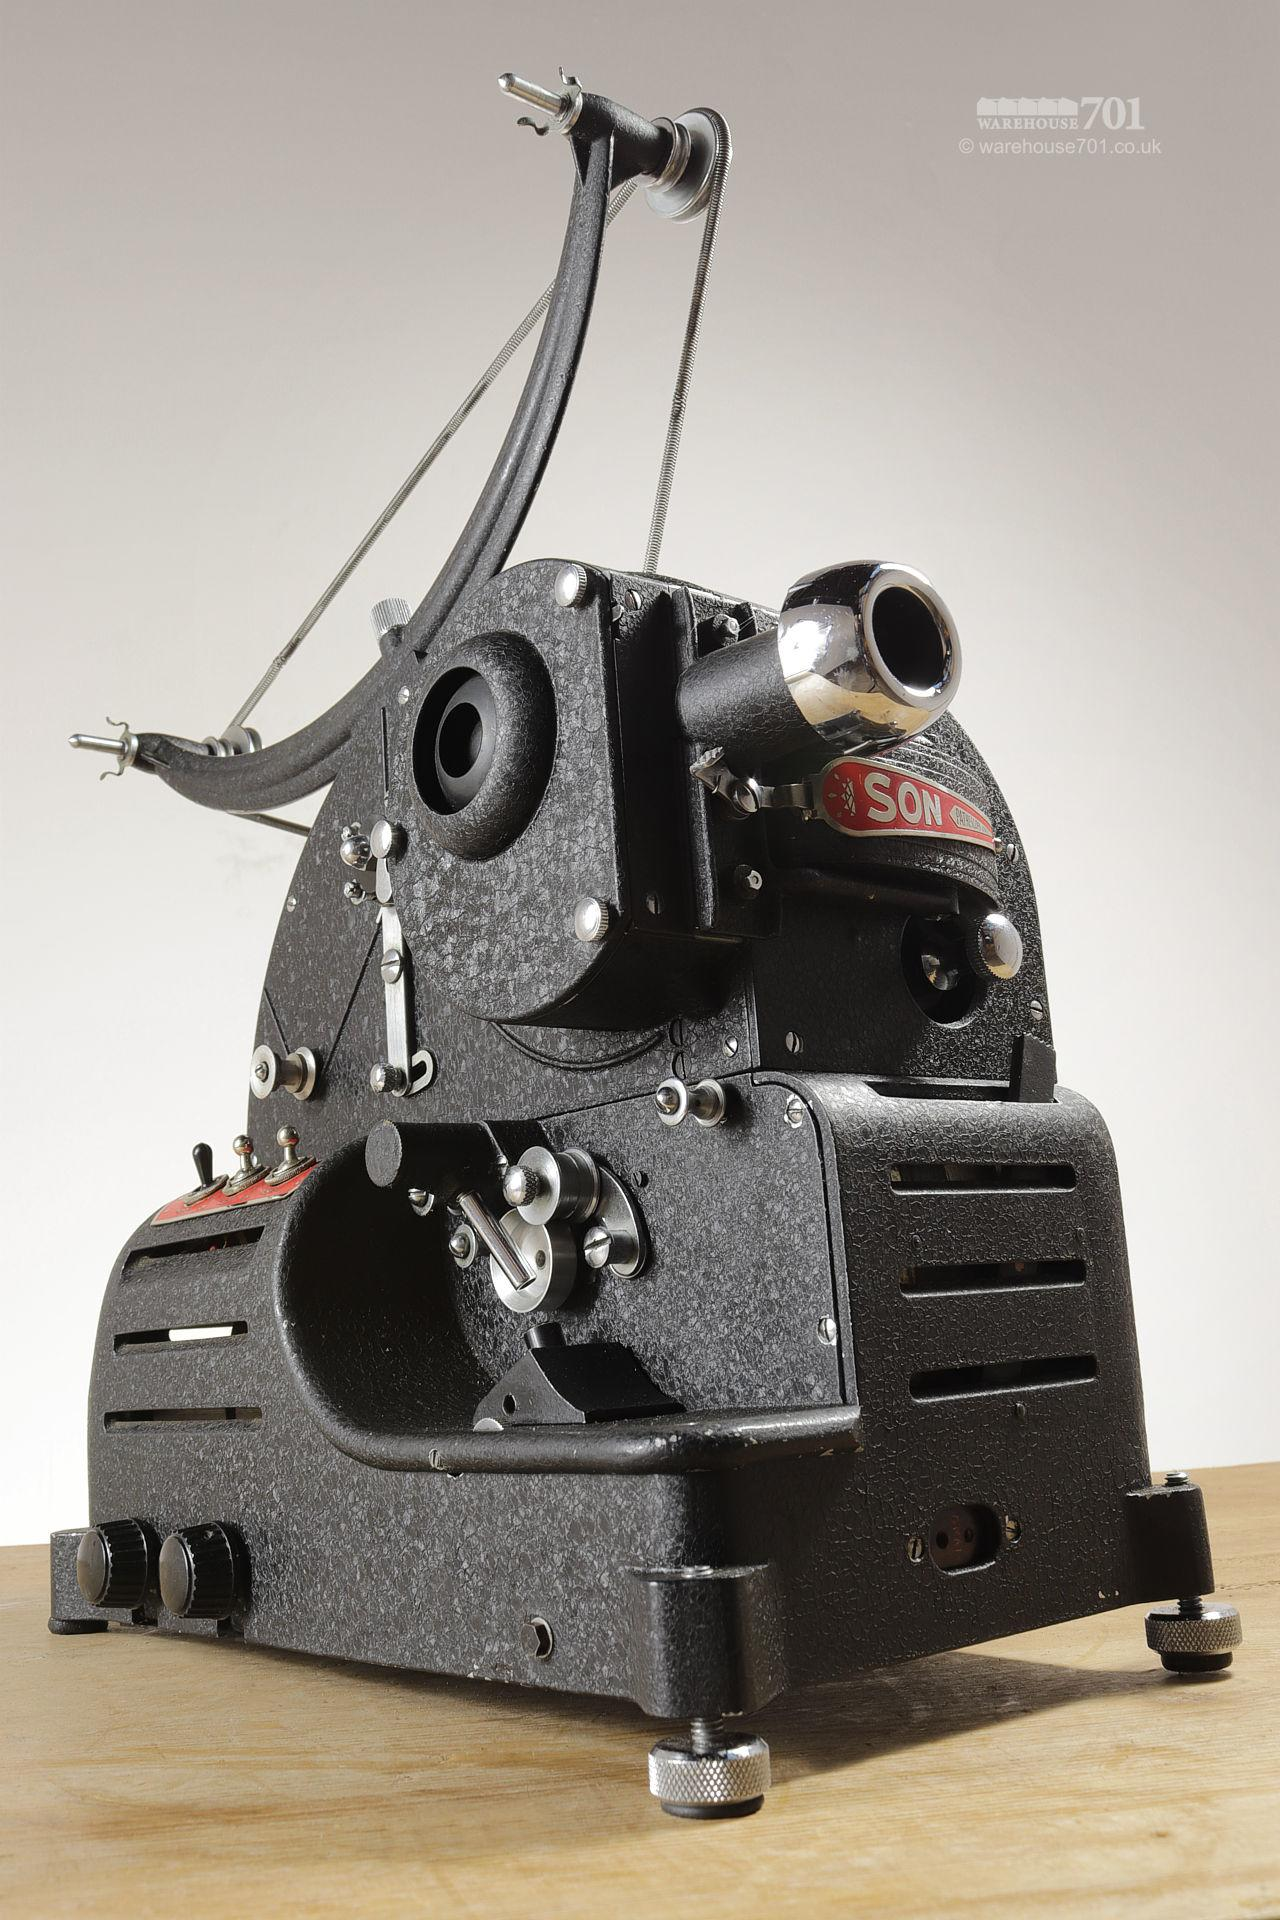 Pathescope 'Son' Vintage Film Projector